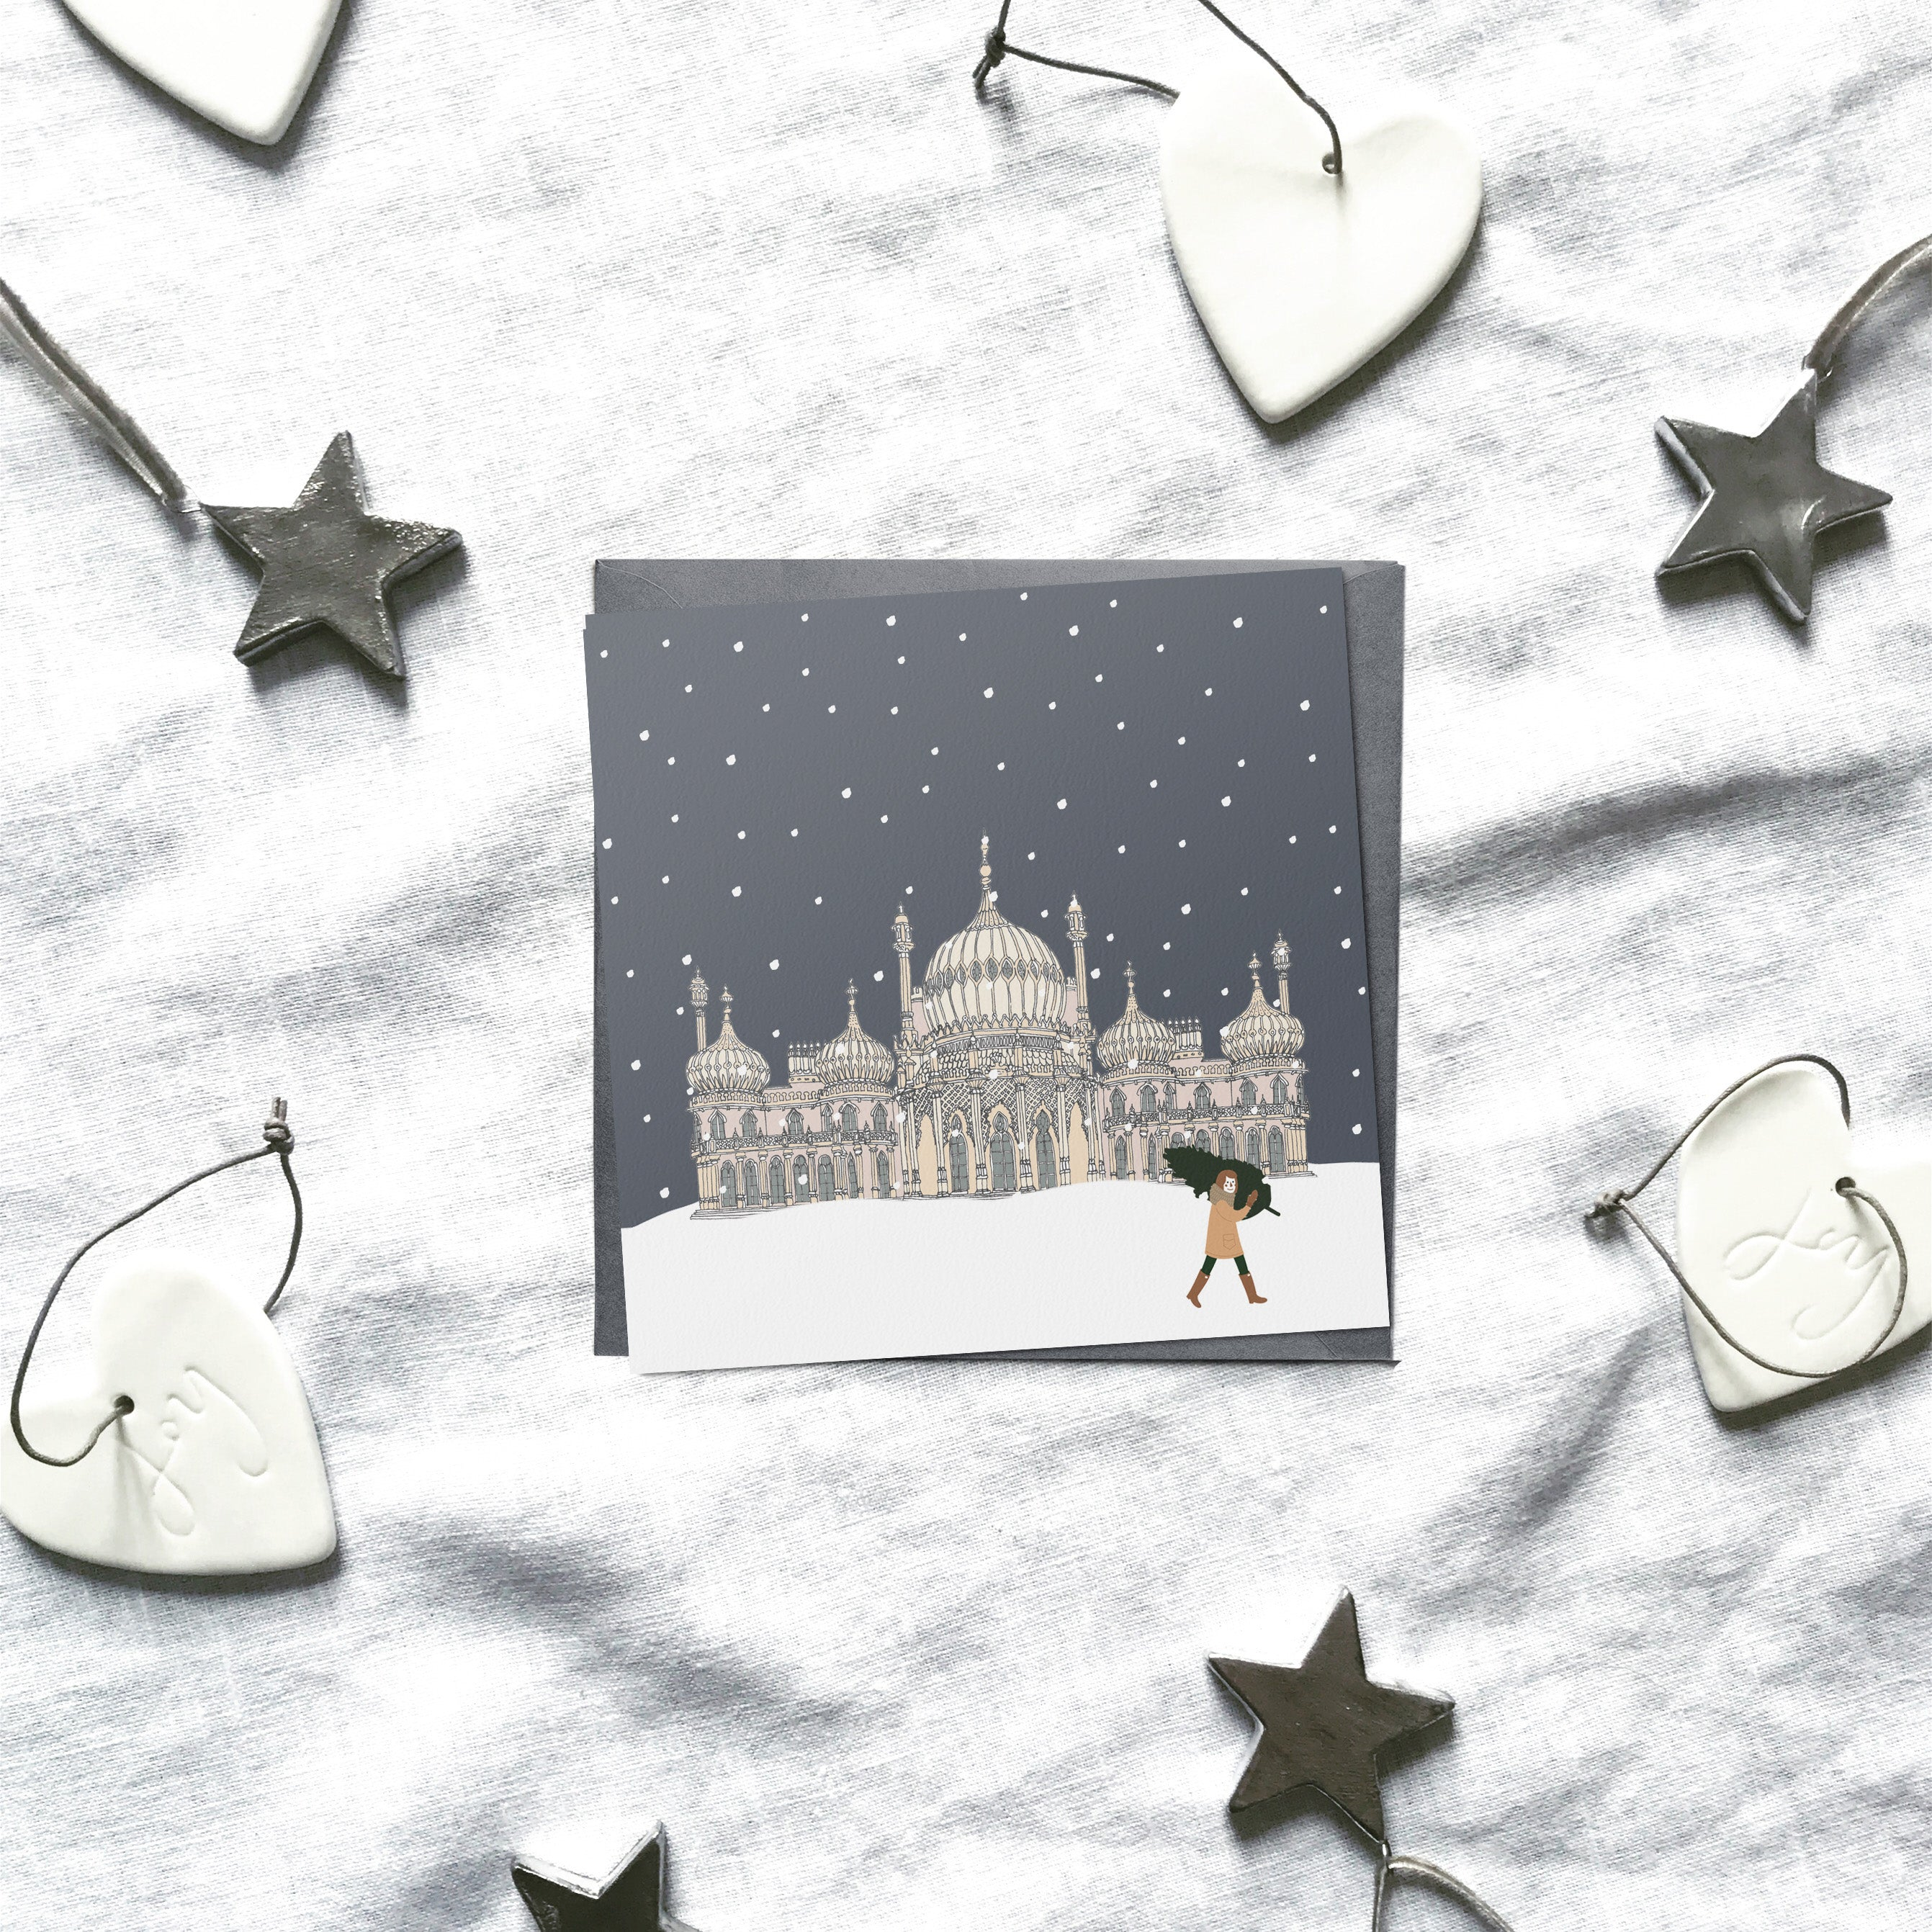 Brighton 'Britain in the snow' Christmas cards | ink & white